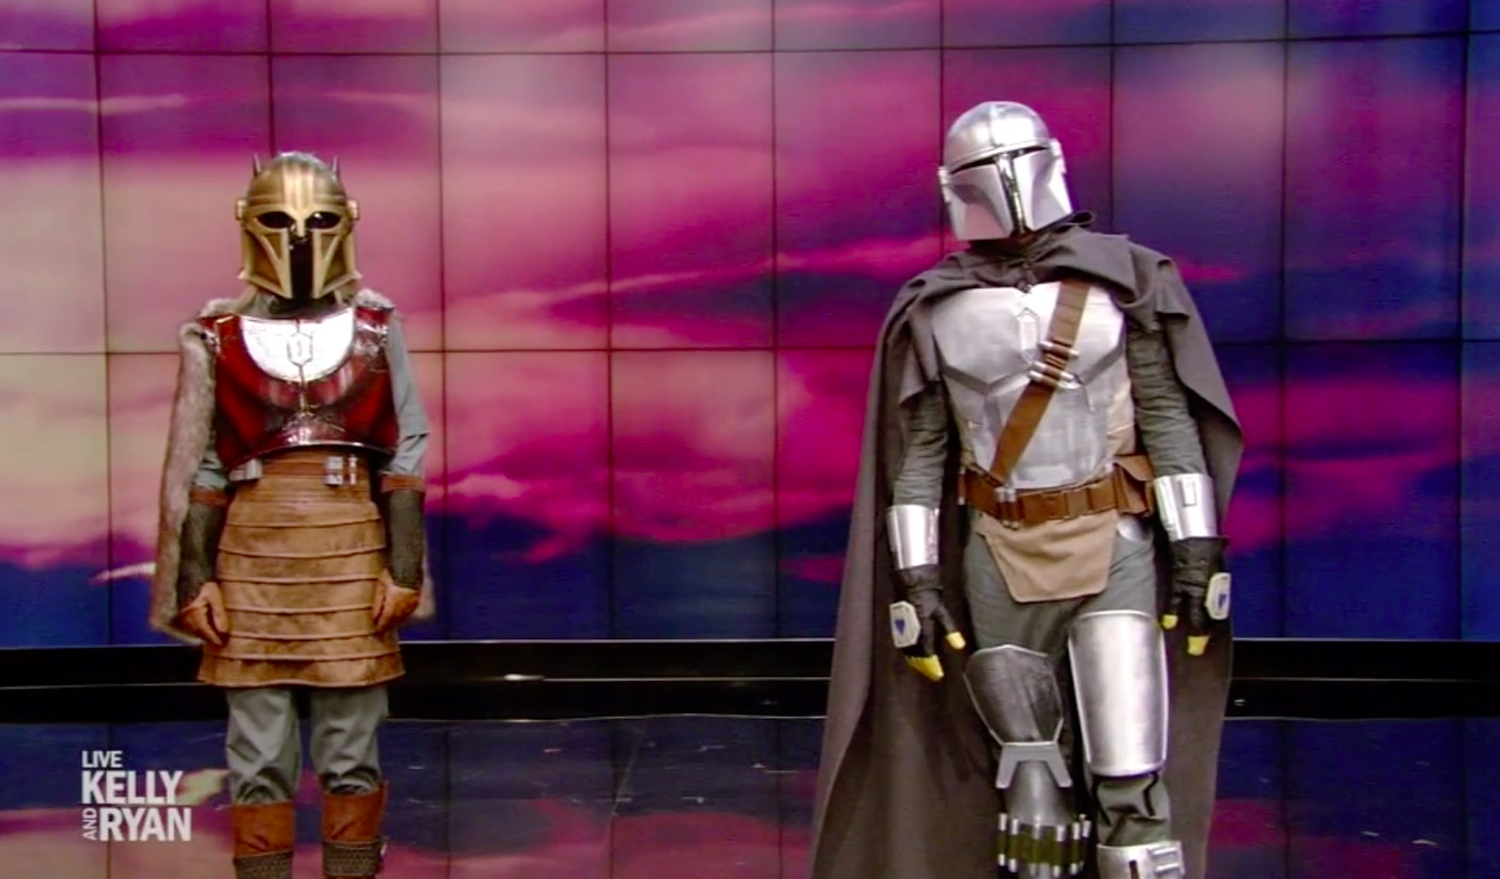 Kelly Ripa and Ryan Seacrest in The Mandalorian halloween costumes